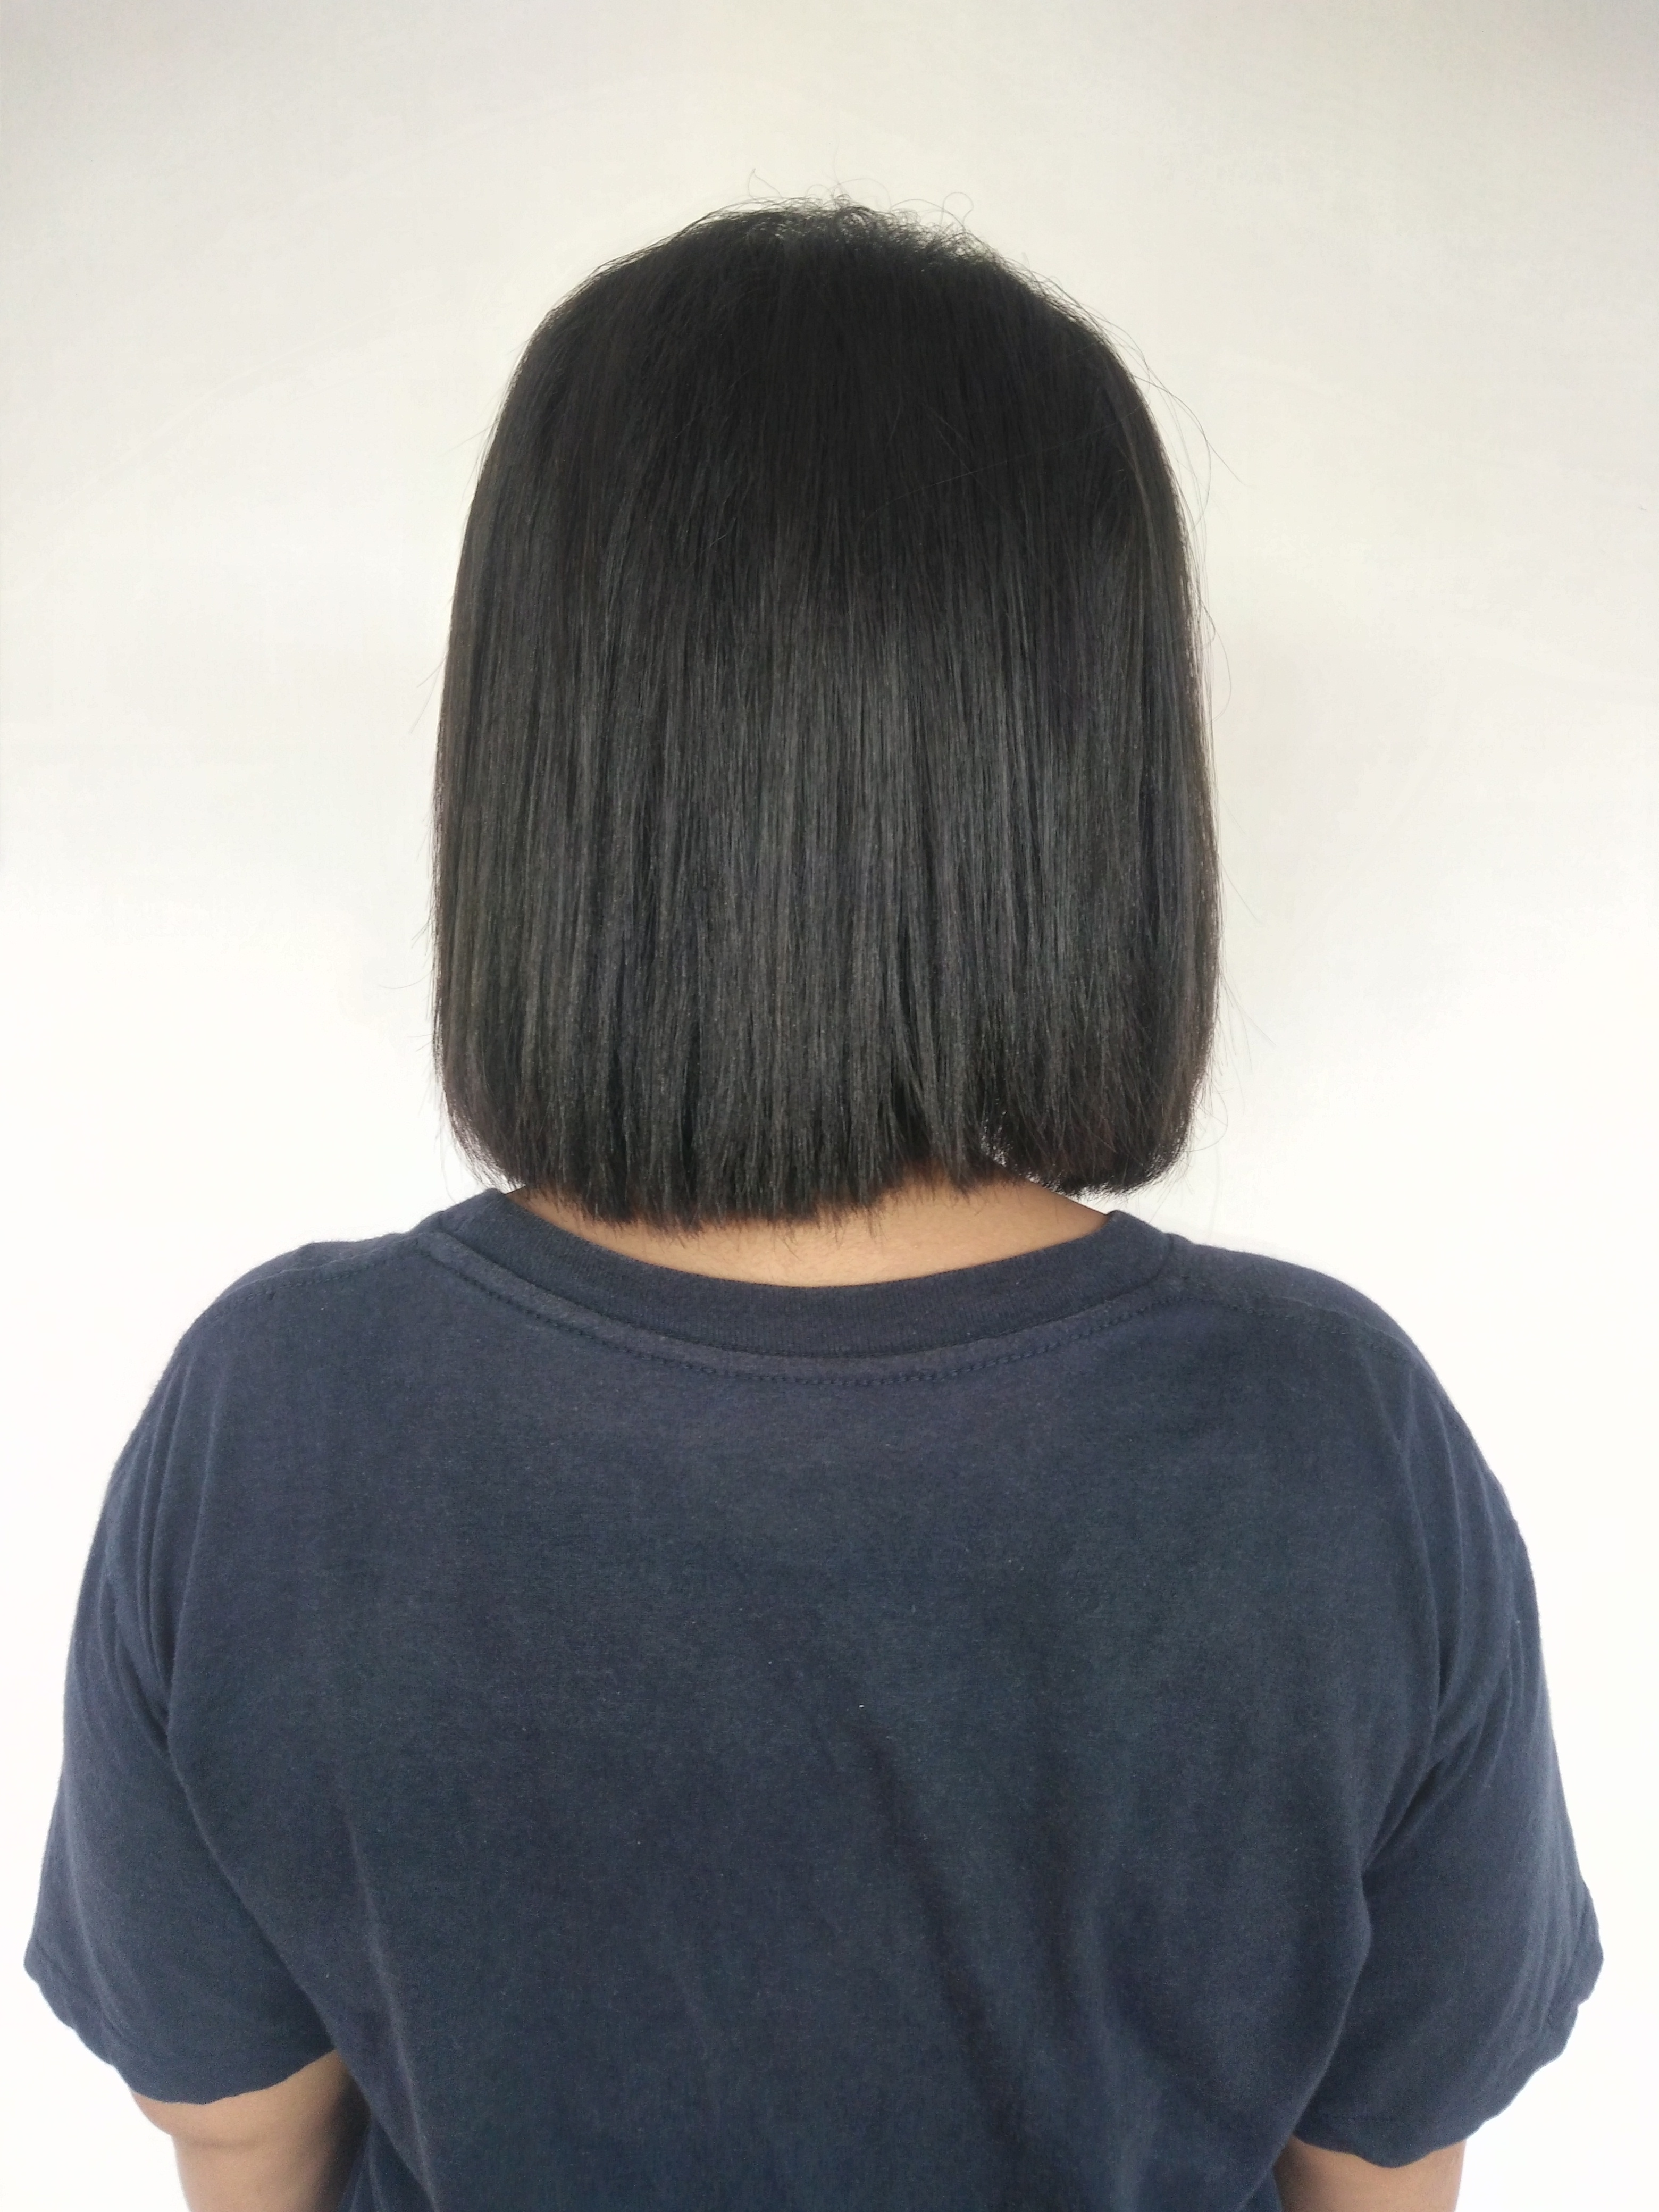 File:Rear view of woman with short black hair (2).jpg ...